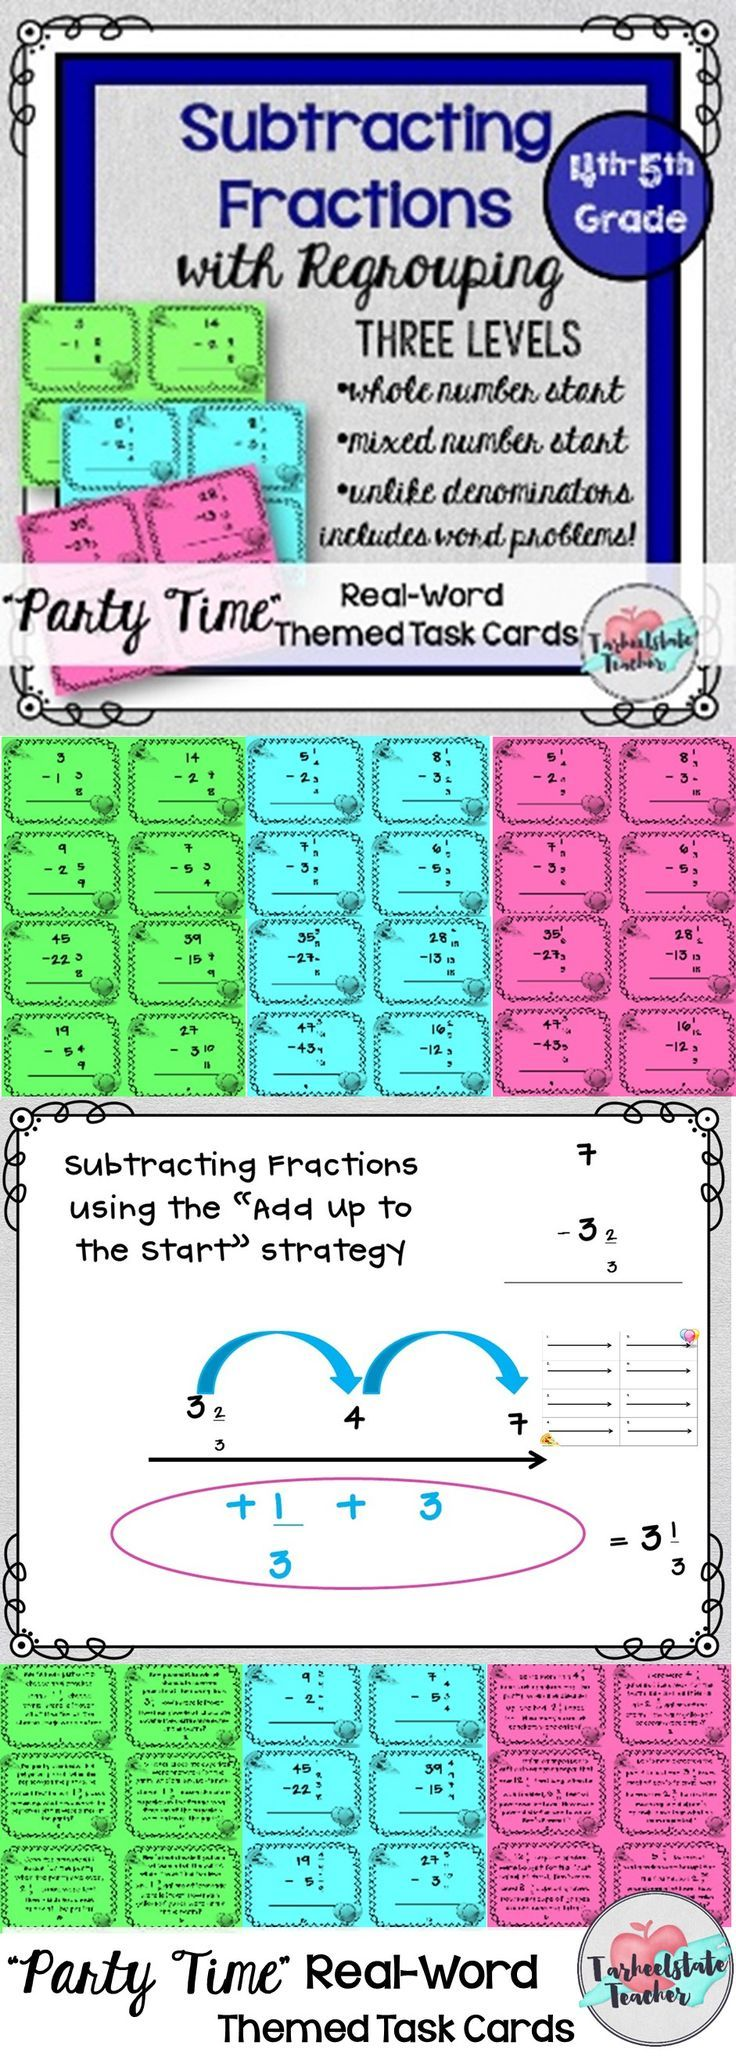 Subtracting Mixed Numbers with Regrouping | Fractions Word Problems ...